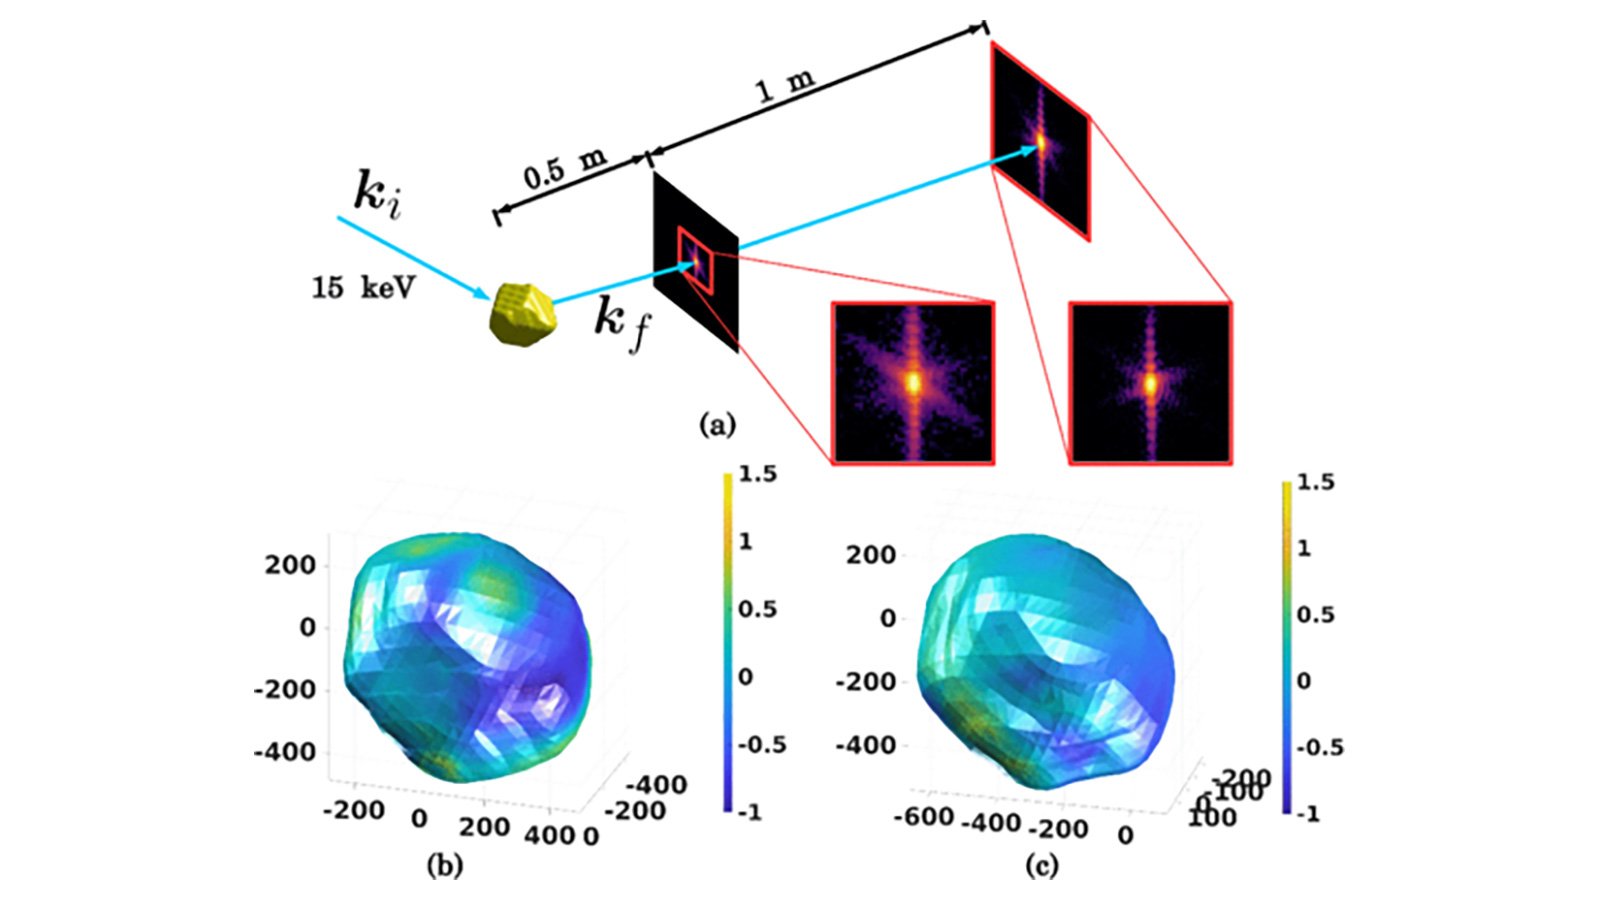 This schematic (top) shows Bragg coherent diffraction imaging phase retrieval of X-rays scattered by a gold nanoparticle.  Two reconstructions of the gold nanoparticle are shown at bottom. (Image by Argonne National Laboratory.)